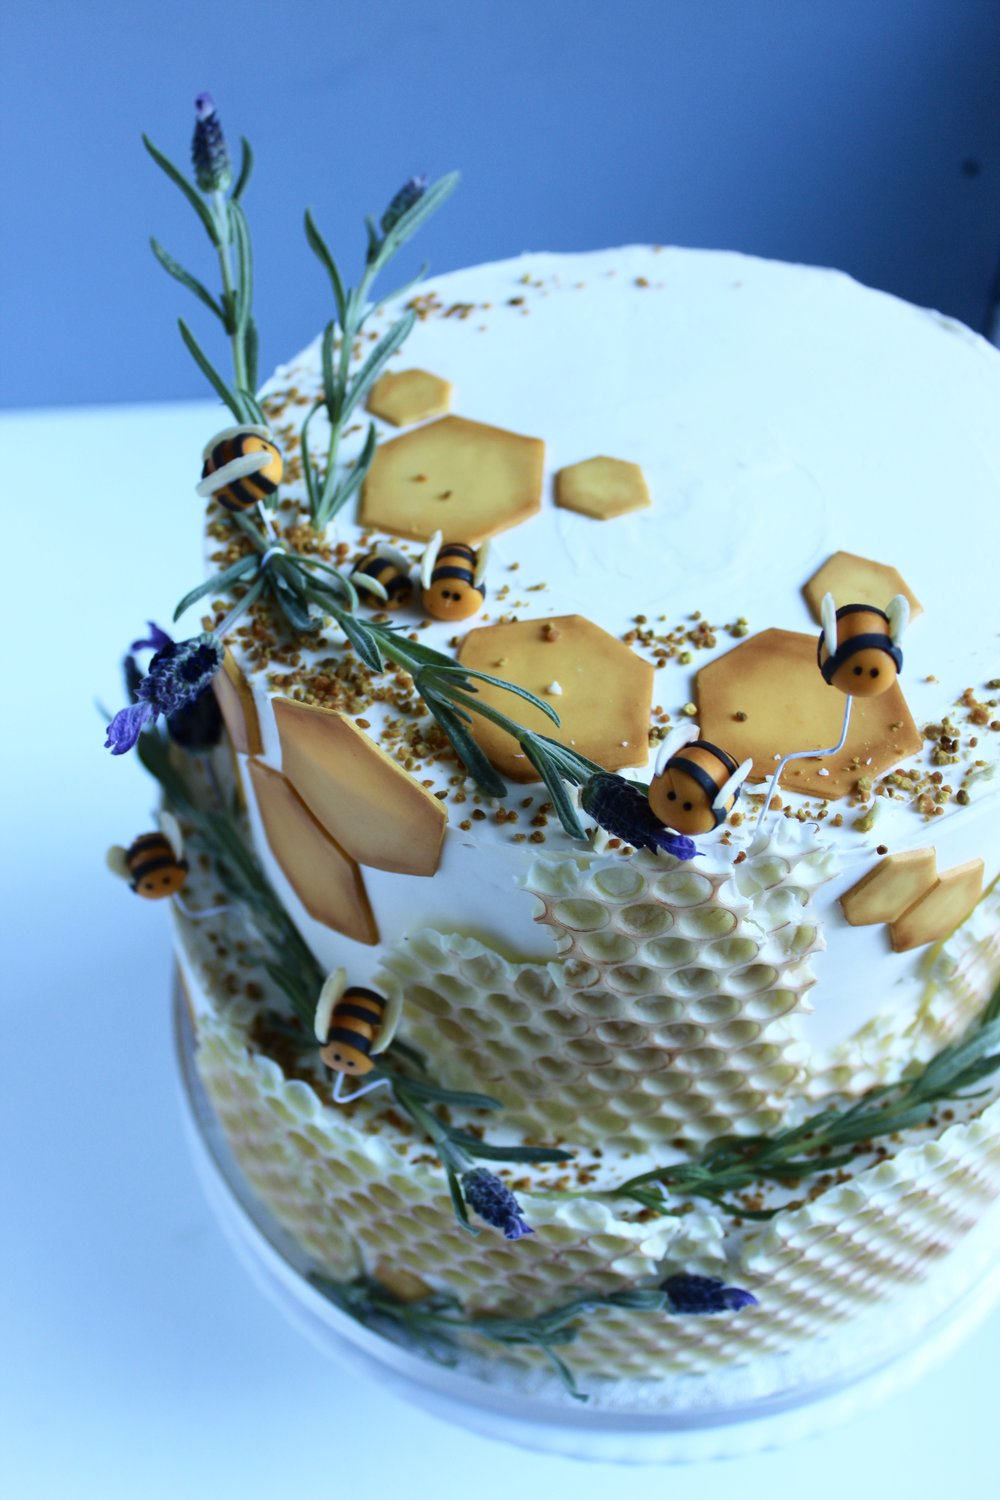 Lemon and thyme bottom tier, lavender and honey top tier.